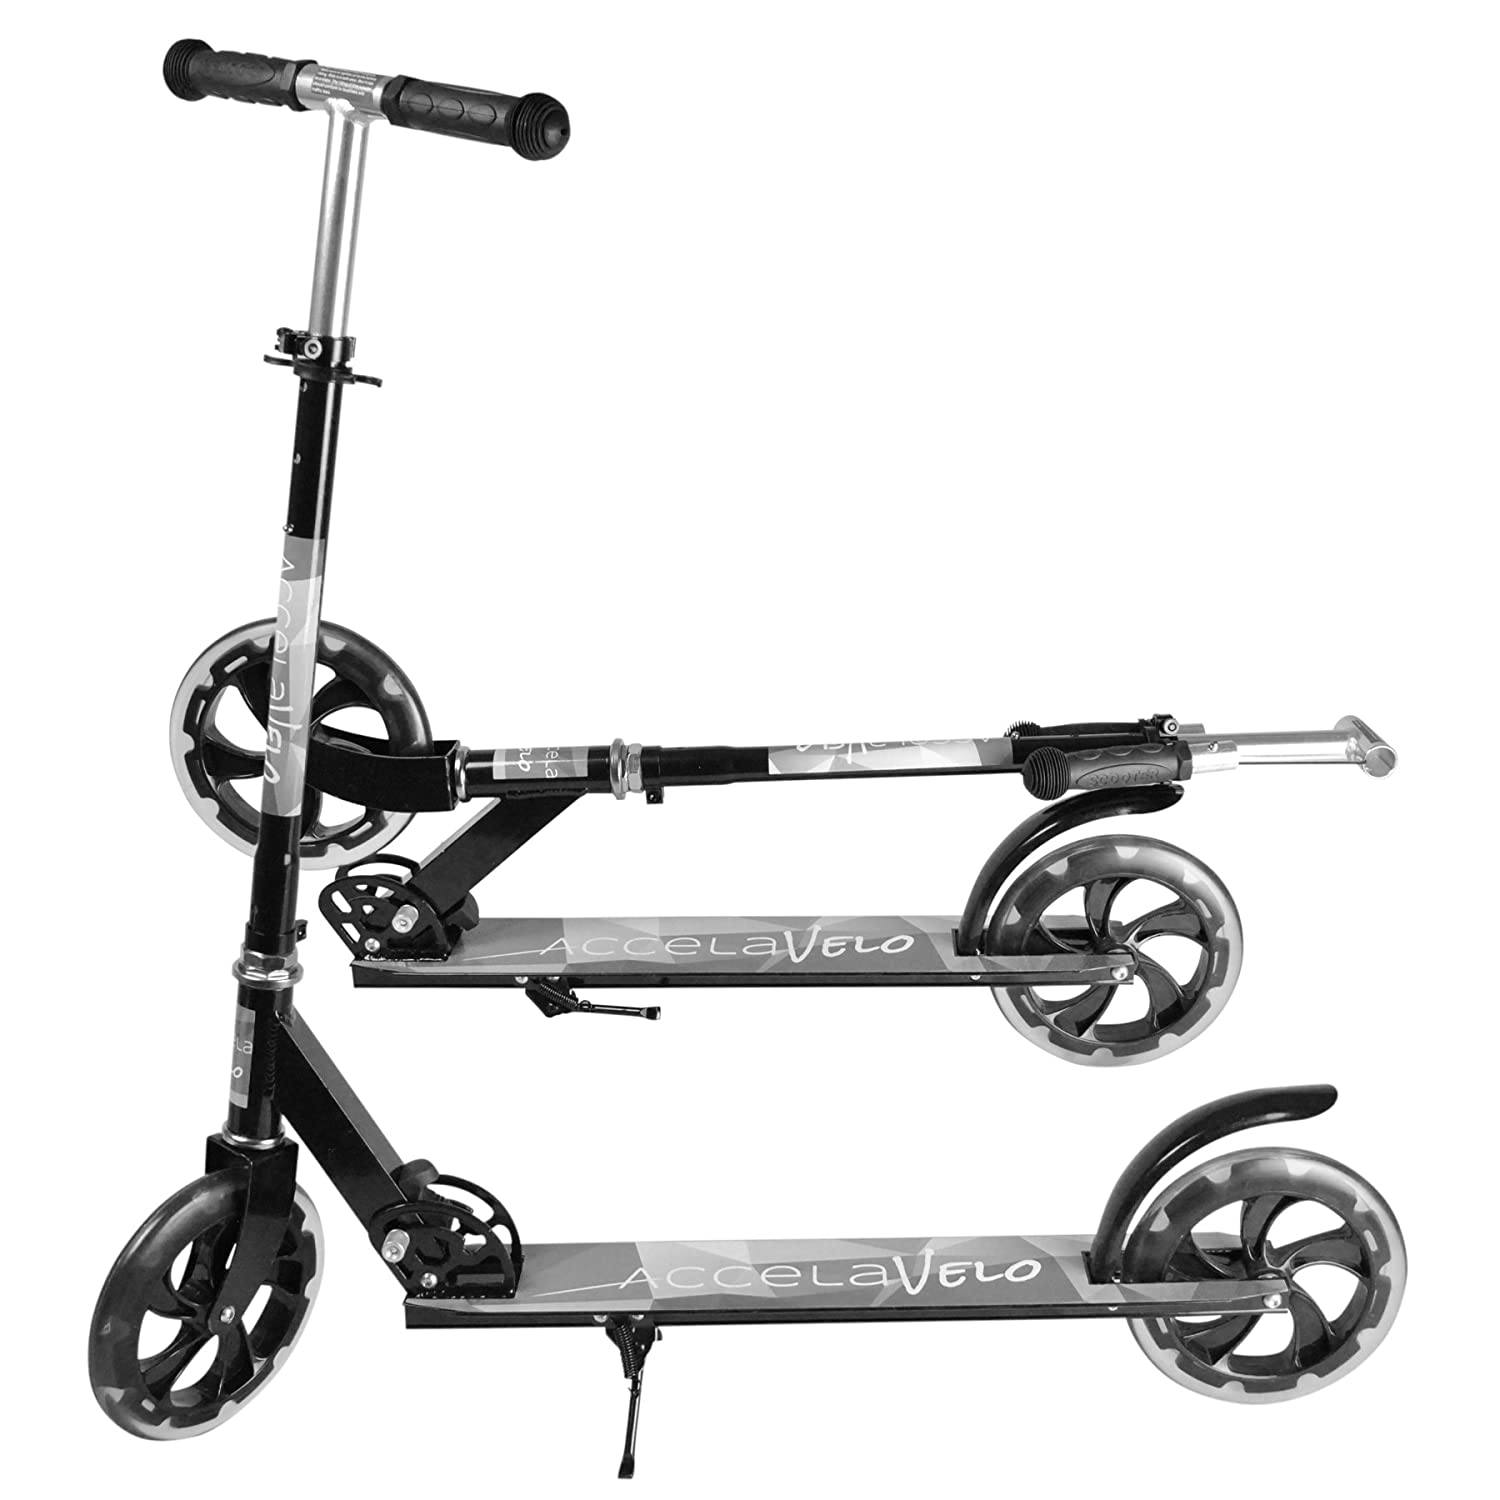 AccelaVelo Black Adult Kick Scooter